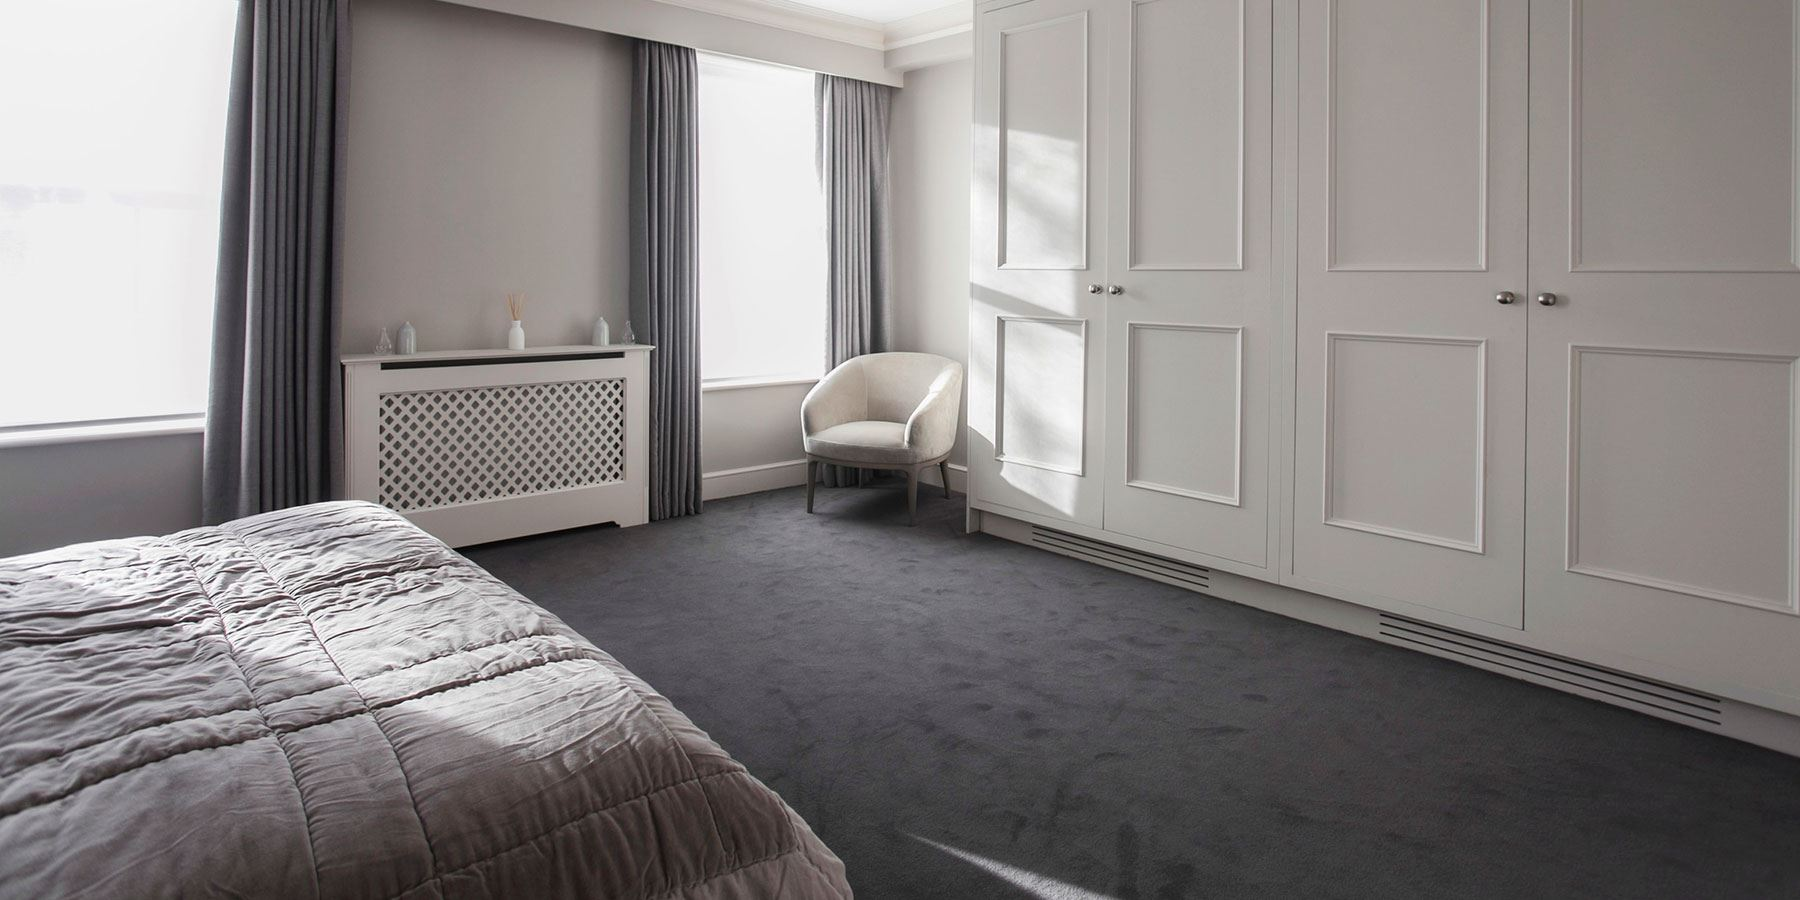 Your bedroom is a sanctuary to escape daily life - Burlanes design consultants offer a start to finish bespoke, interiors service